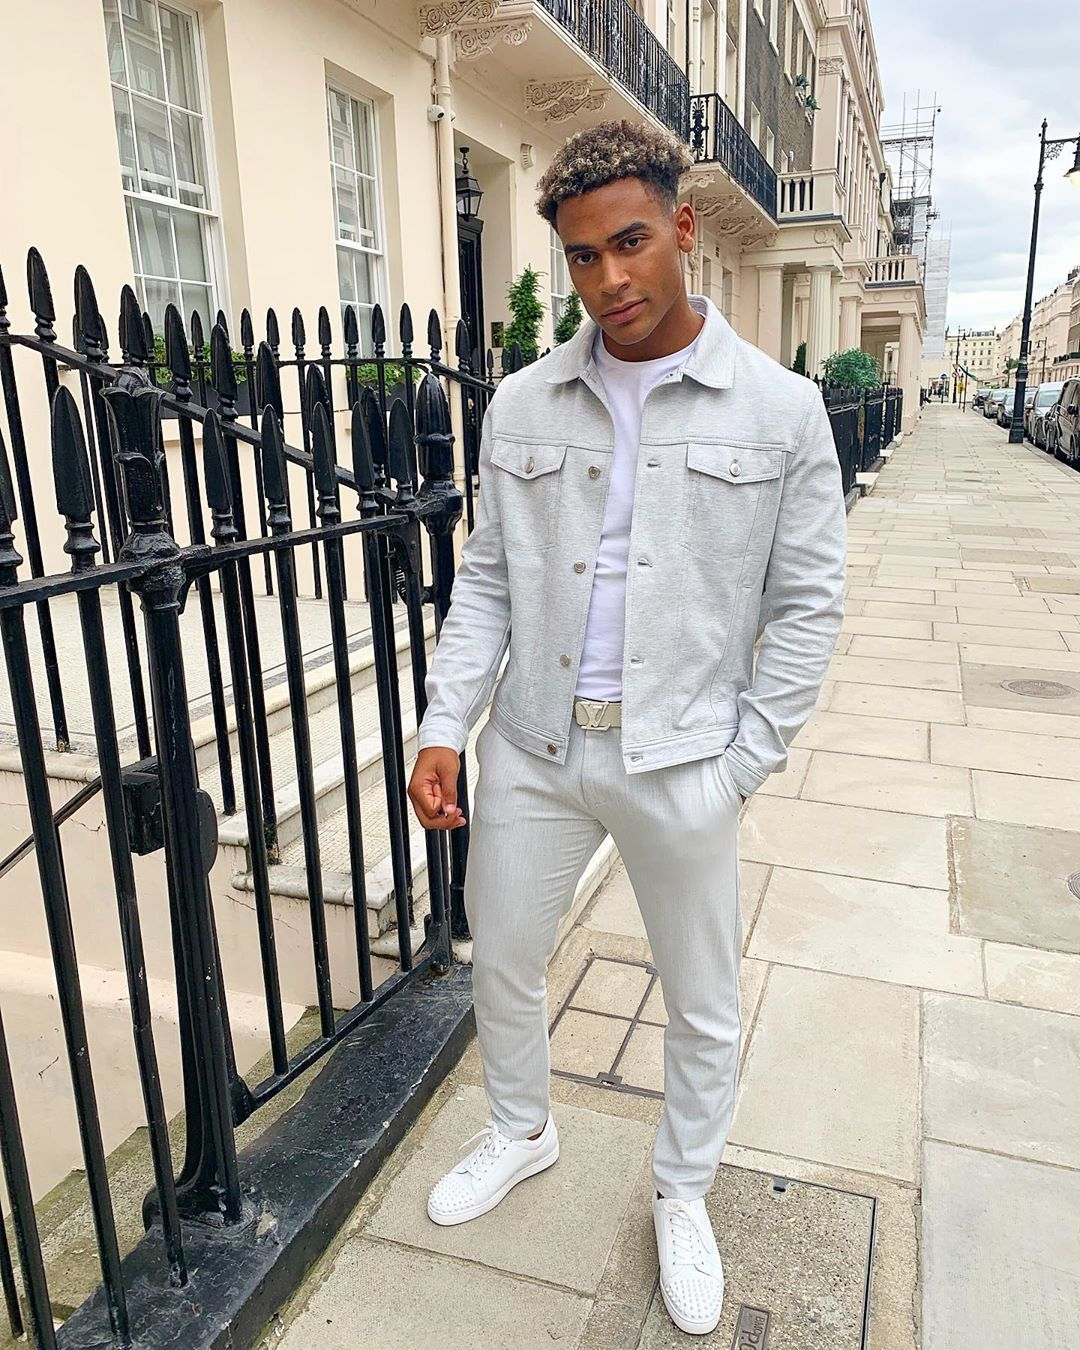 Image may contain:  Love Island 2019 contestants, Love Island, 2019, now, job, Instagram, updates, news, latest, series five, Jordan Hames, Jacket, Blazer, Man, Footwear, Shoe, Overcoat, Suit, Coat, Person, Human, Clothing, Apparel